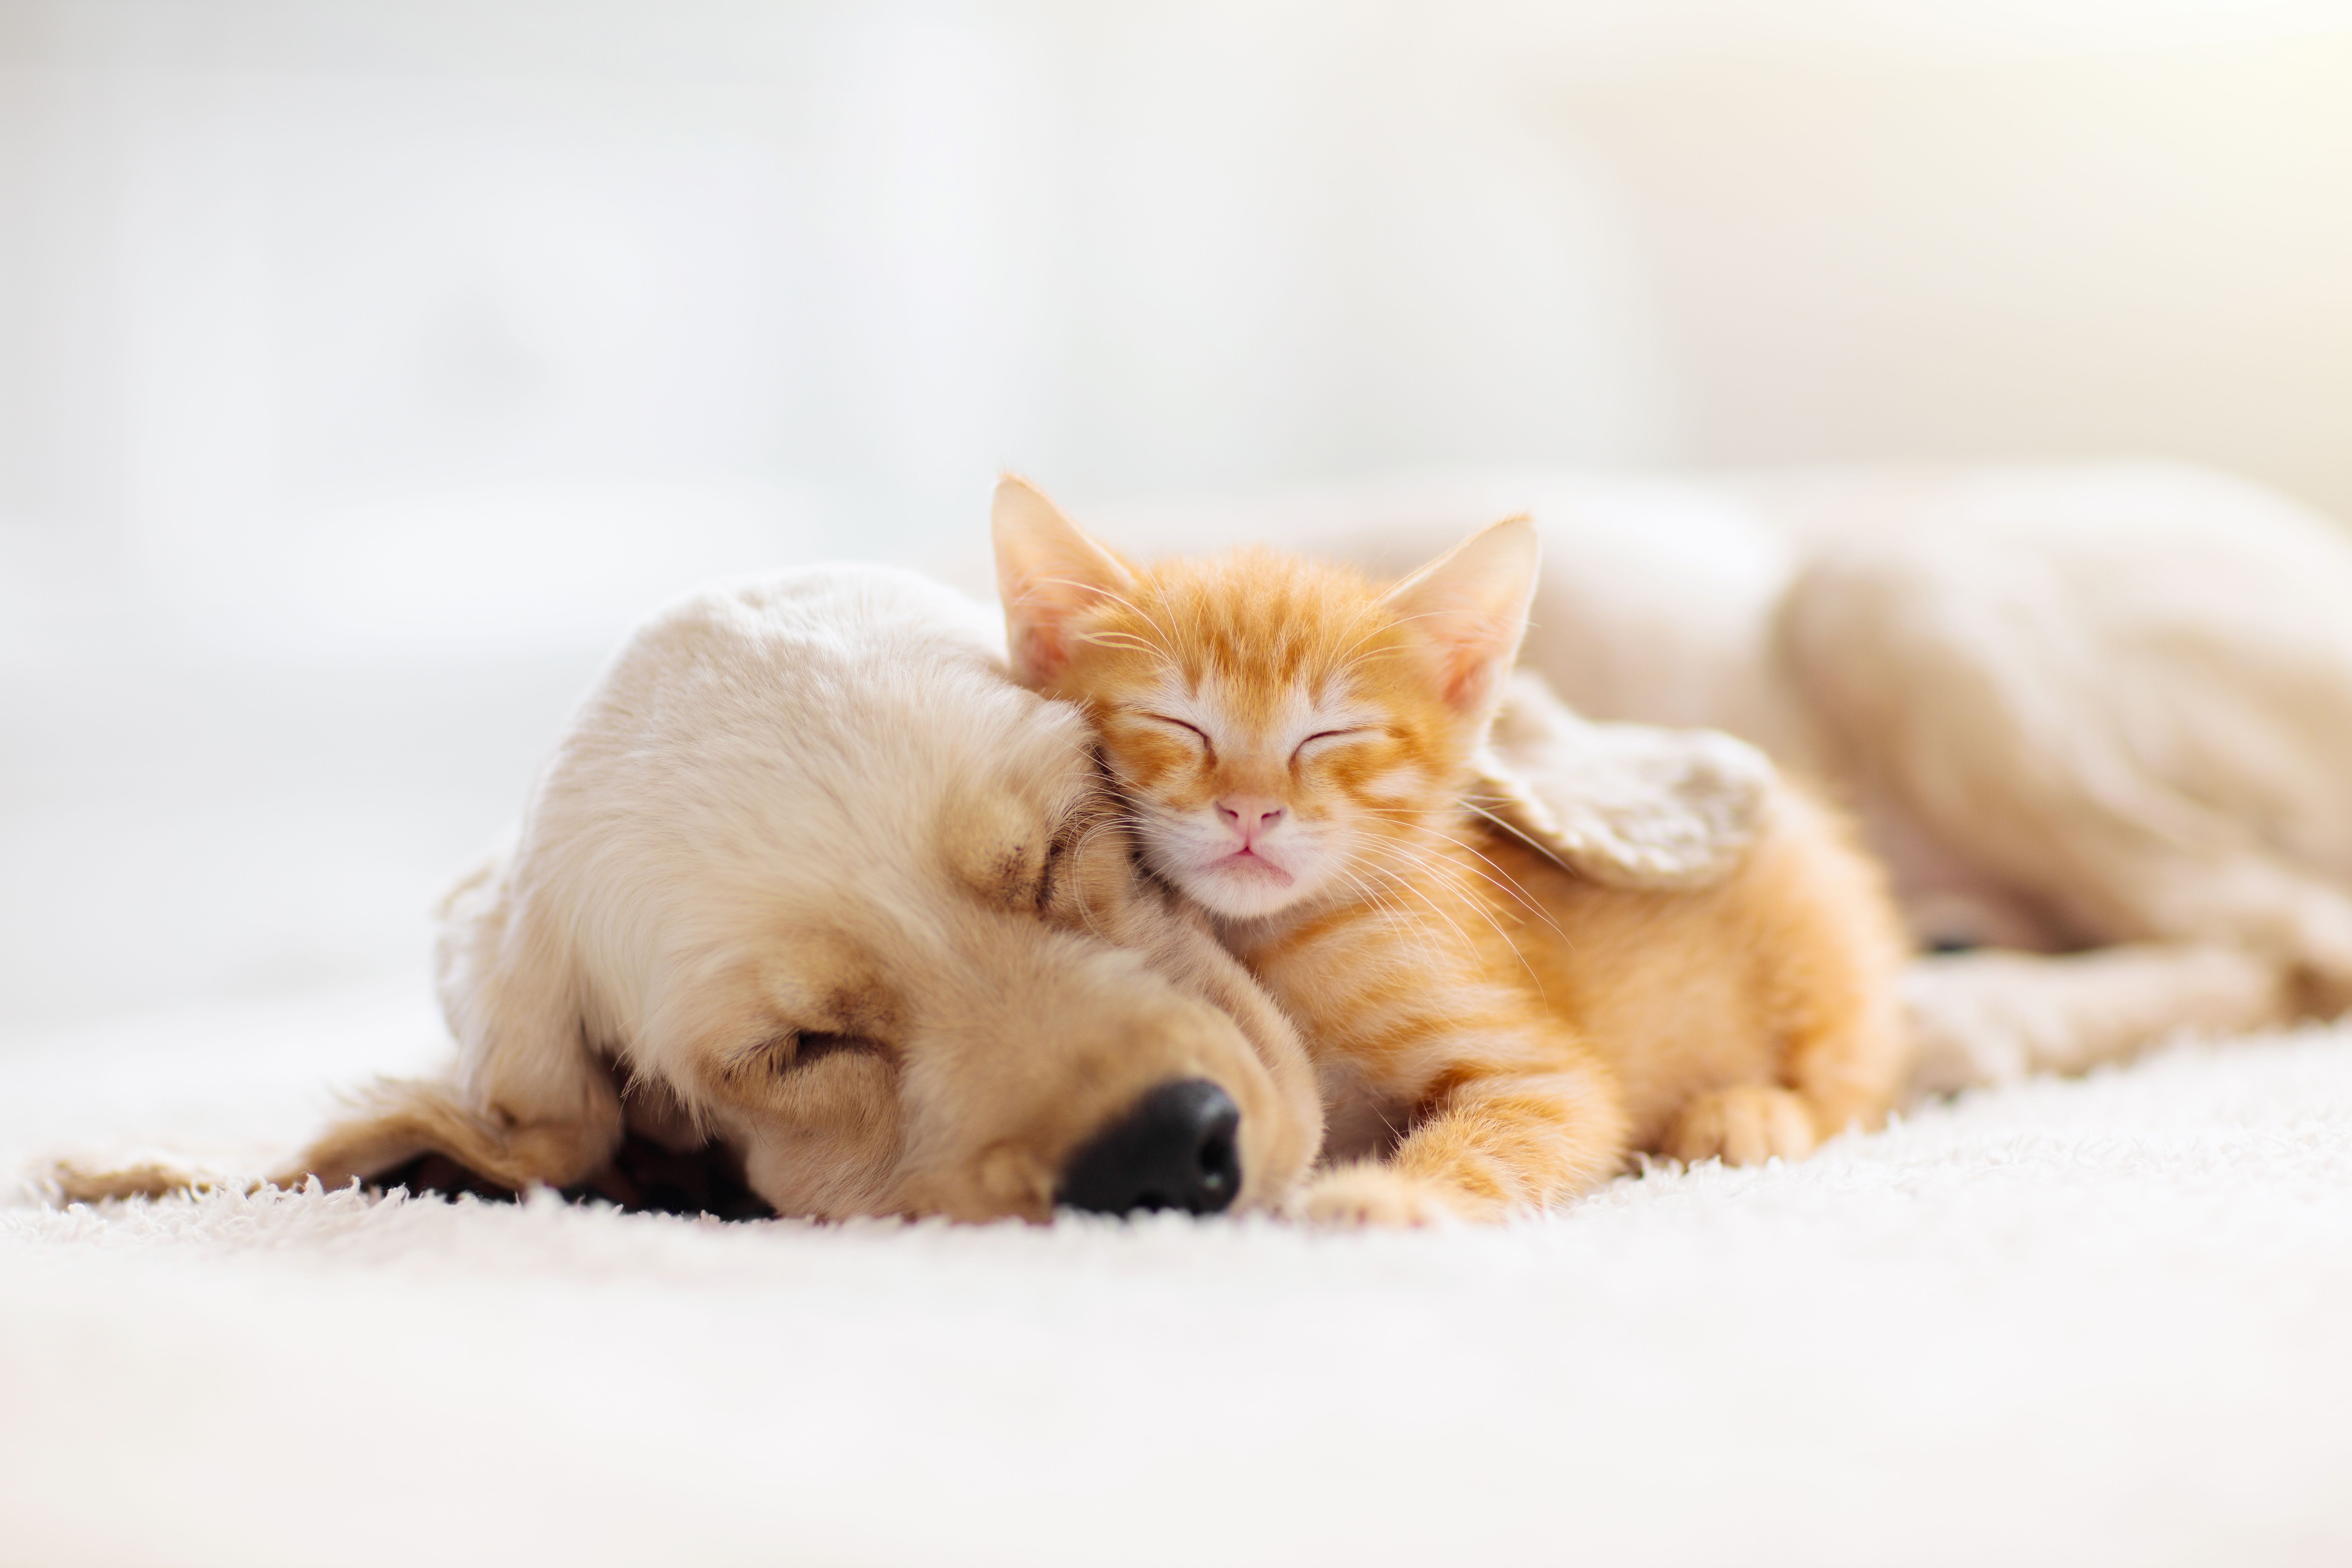 https://livehealthy.ae/wp-content/uploads/2020/08/pets.jpg